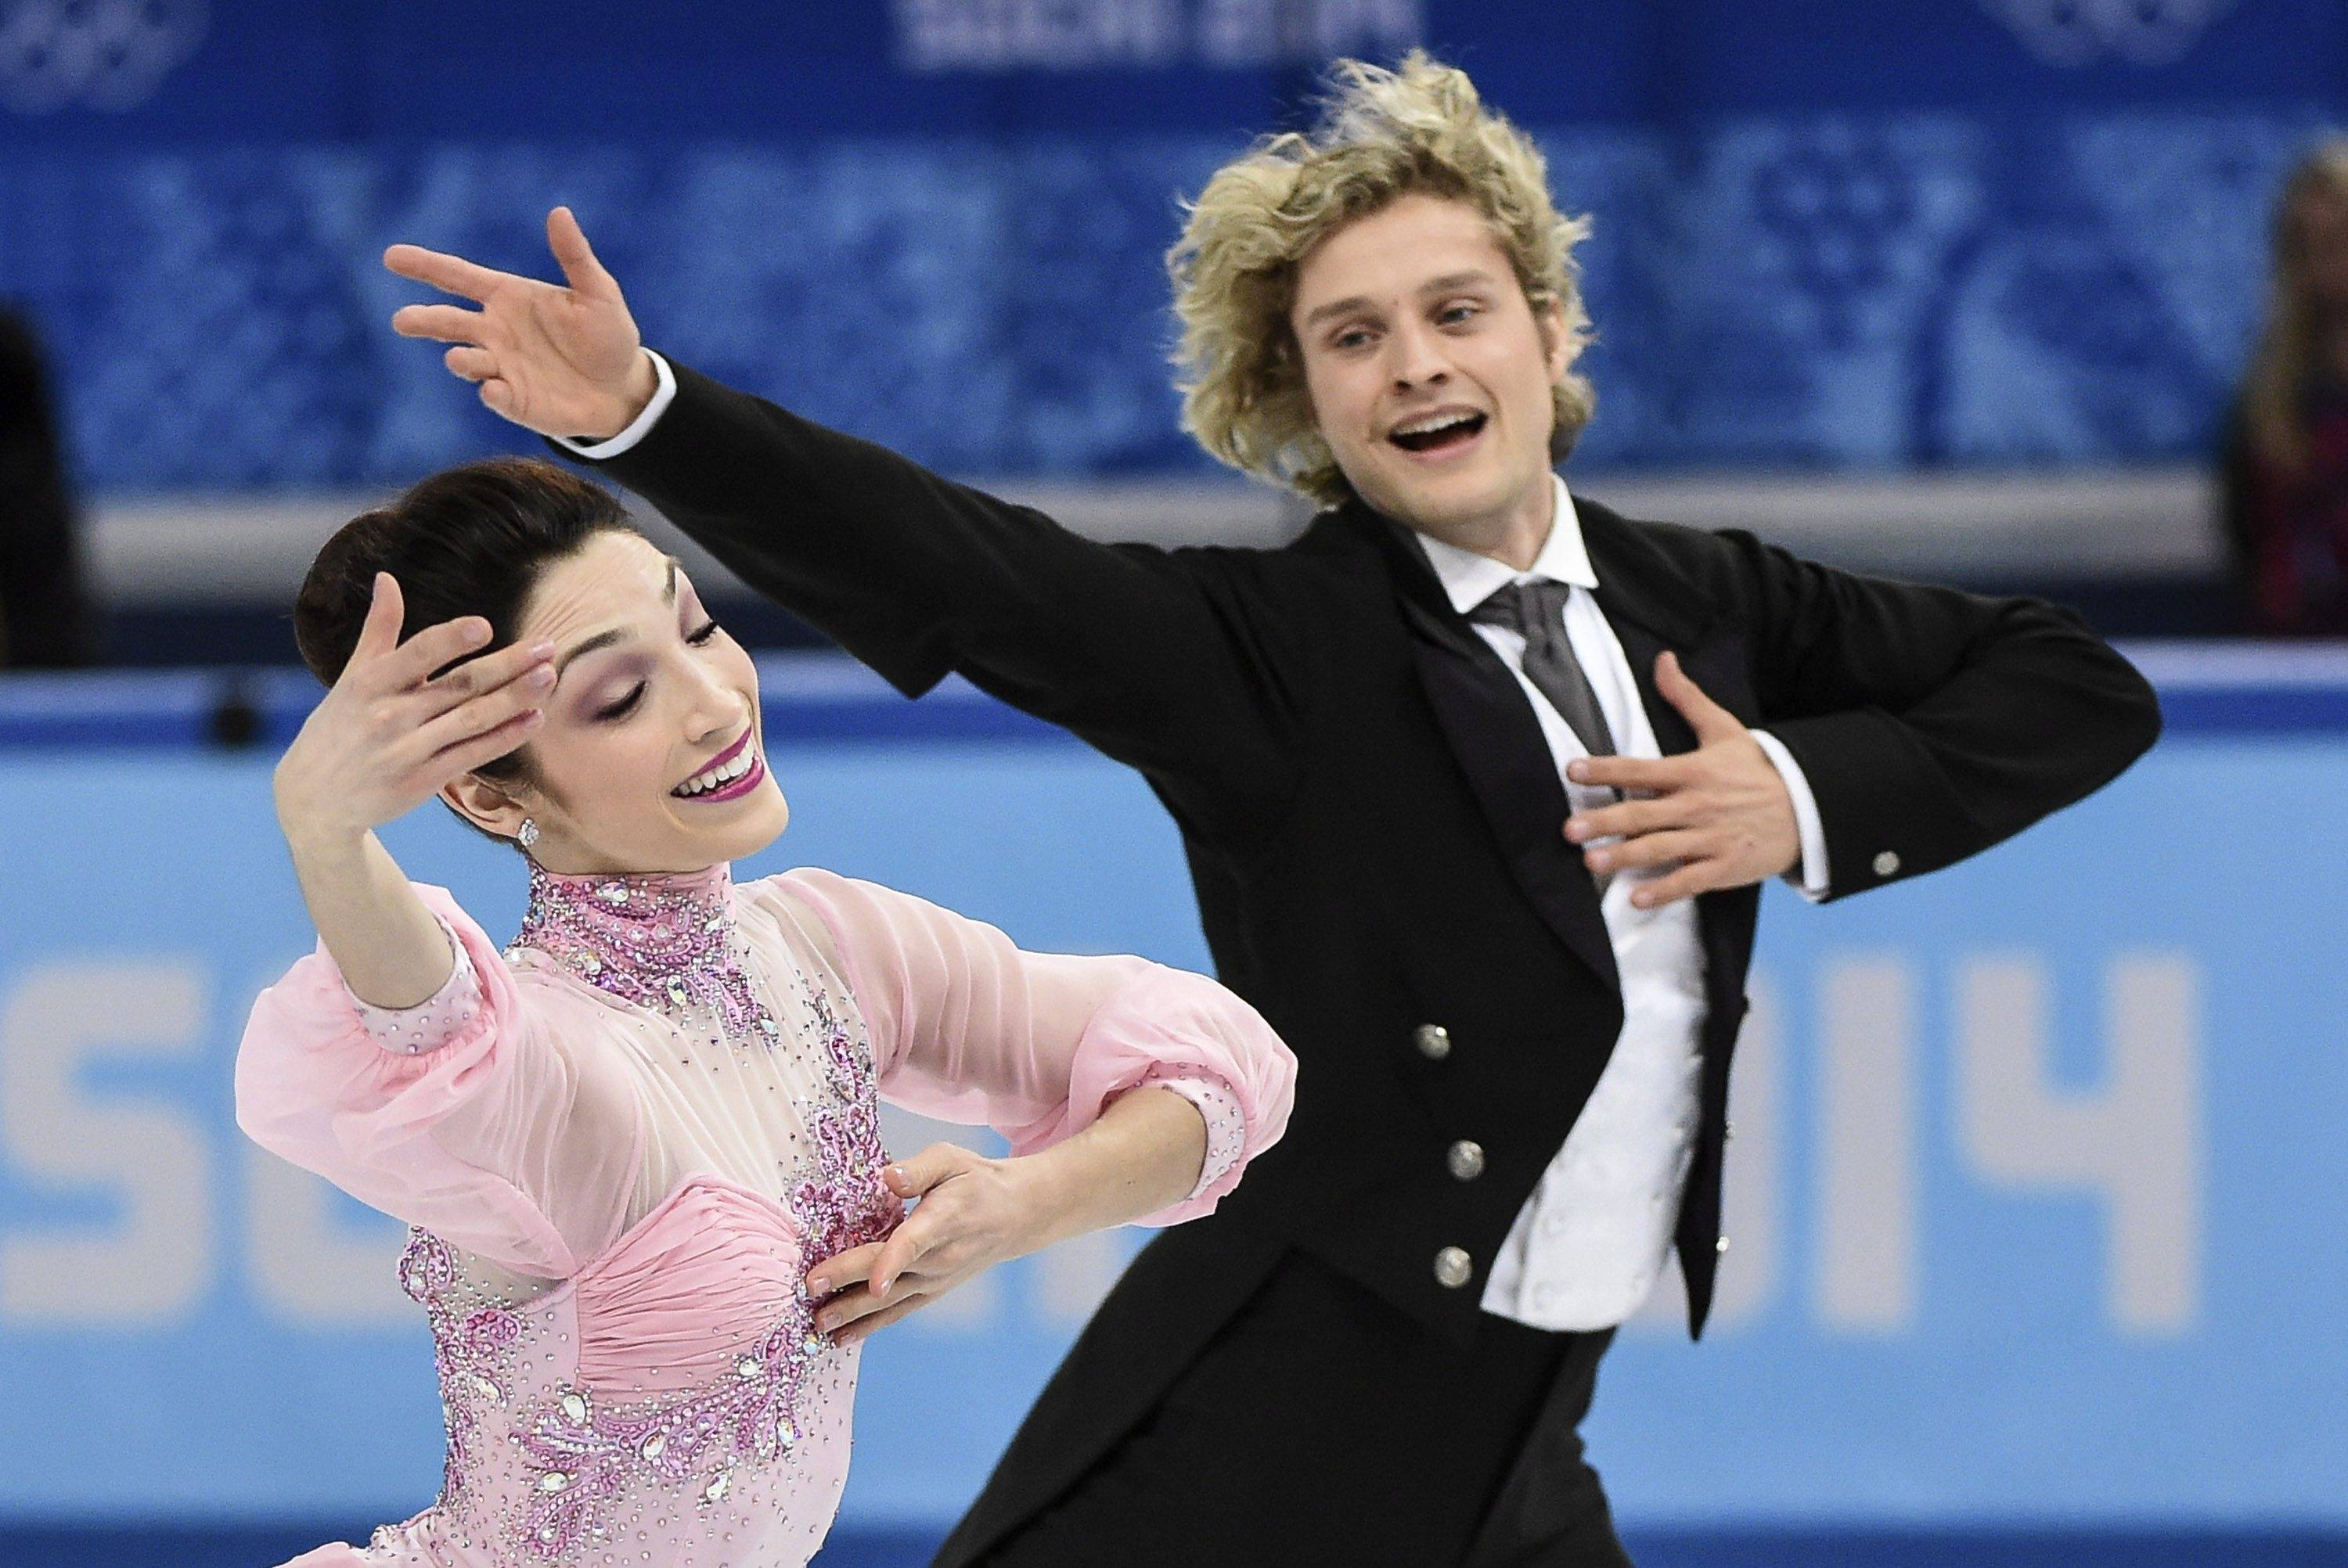 Meryl Davis and Charlie White, of the United States, compete in the ice dance short dance figure skating competition Sunday at the Iceberg Skating Palace during the Winter Olympics in Sochi, Russia. The pair will compete this morning to be the first ice dancers from the US to take home the gold.